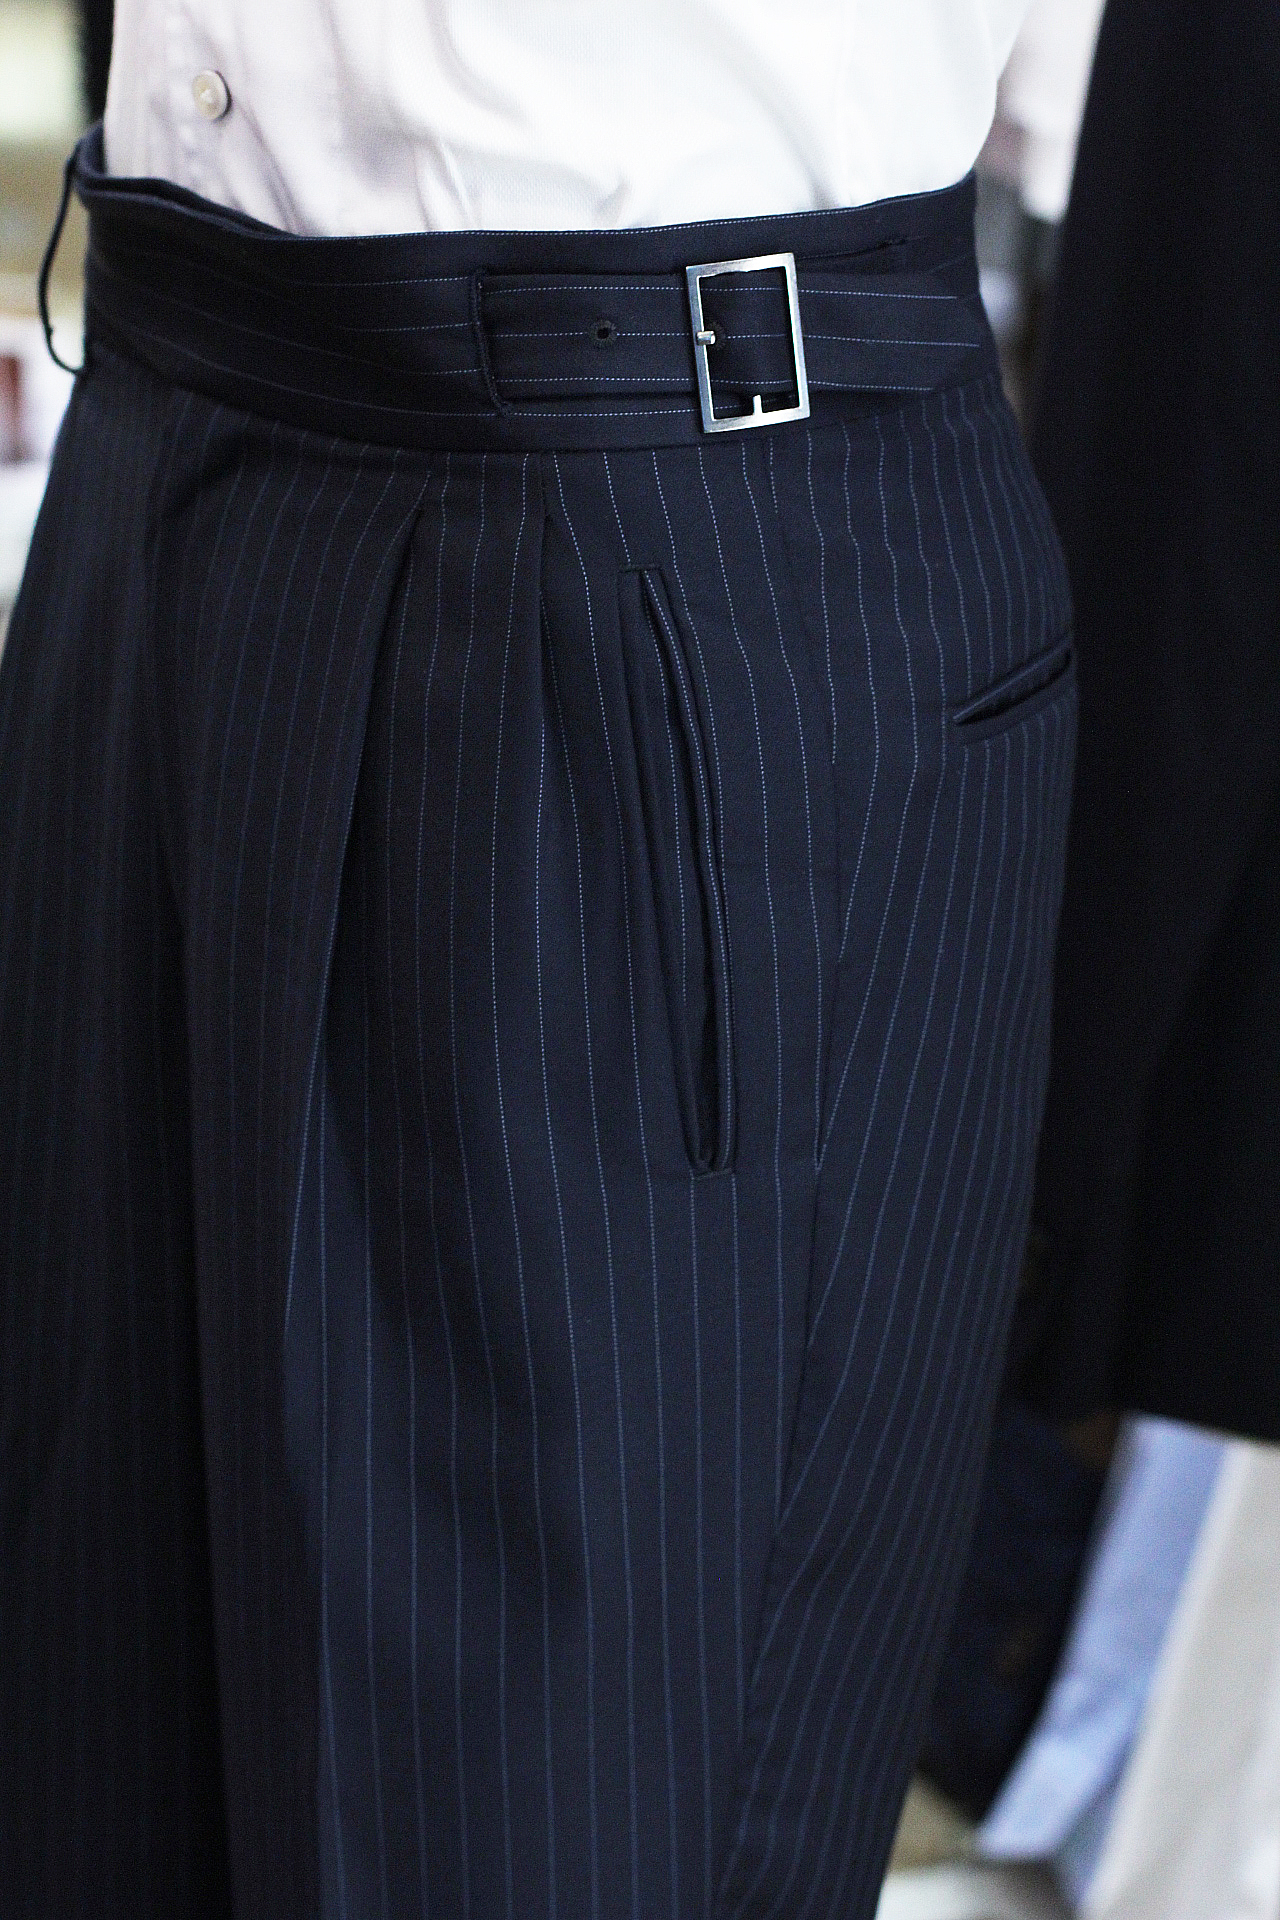 Super 120s Pinstripe Gurkha Trousers Double Pleated Trousers Singapore Bespoke Tailor Made to Measure.JPG